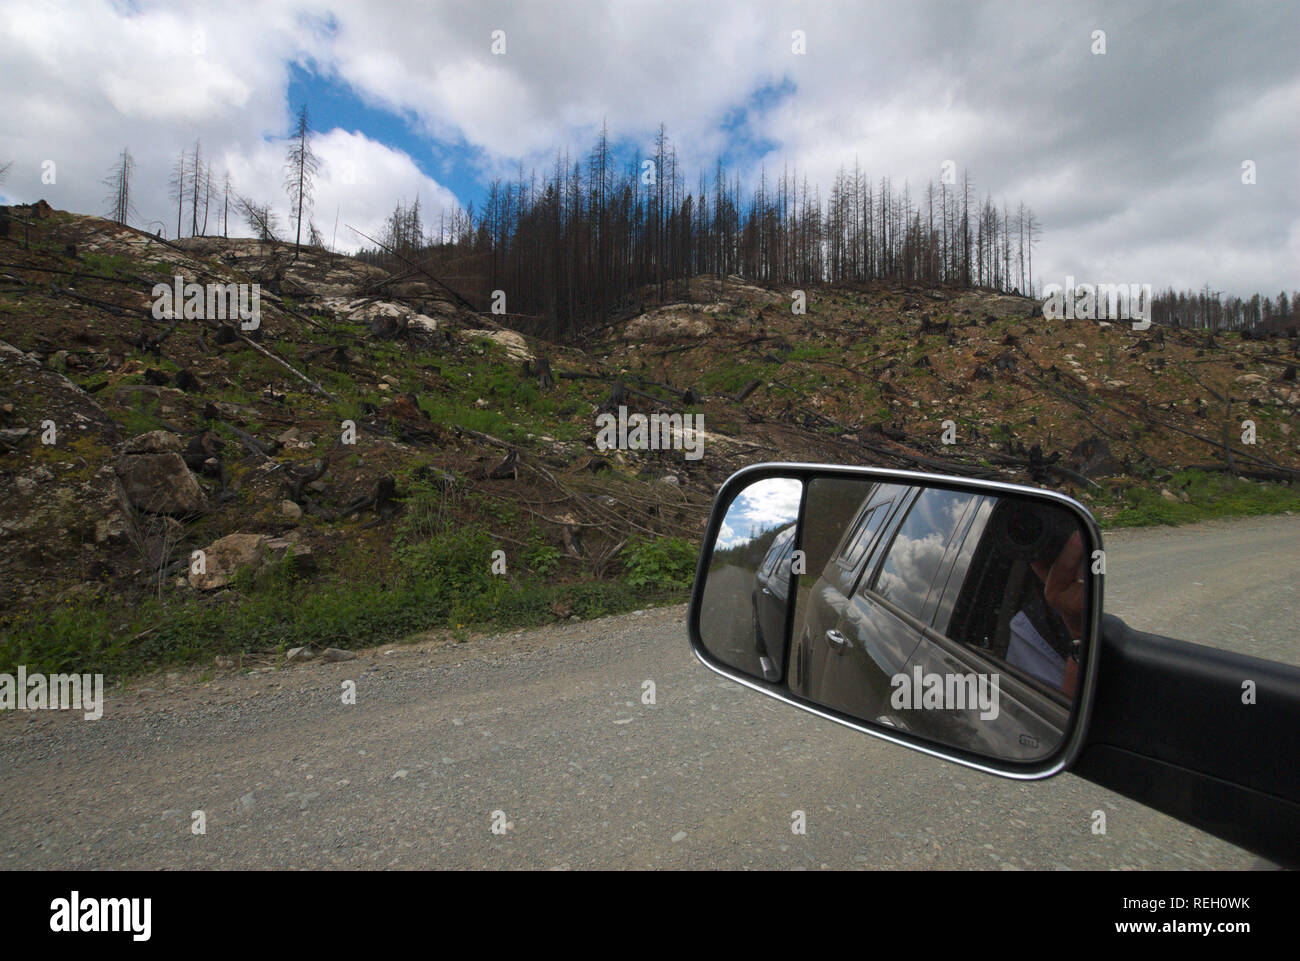 Aftermath of a forest fire in Mission, British Columbia, Canada - Stock Image